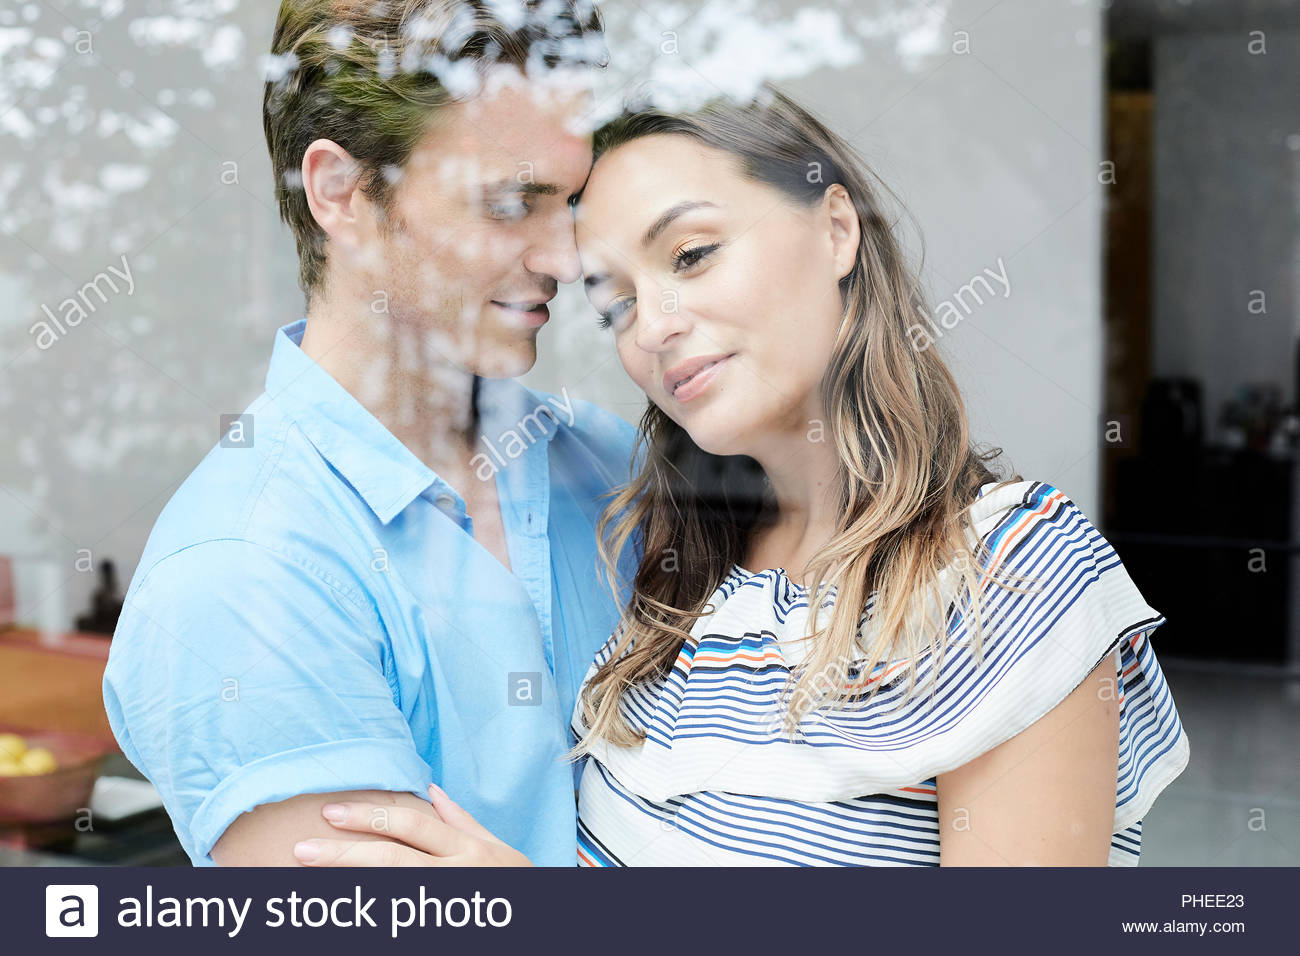 Young couple behind window in Ko Samui, Thailand - Stock Image